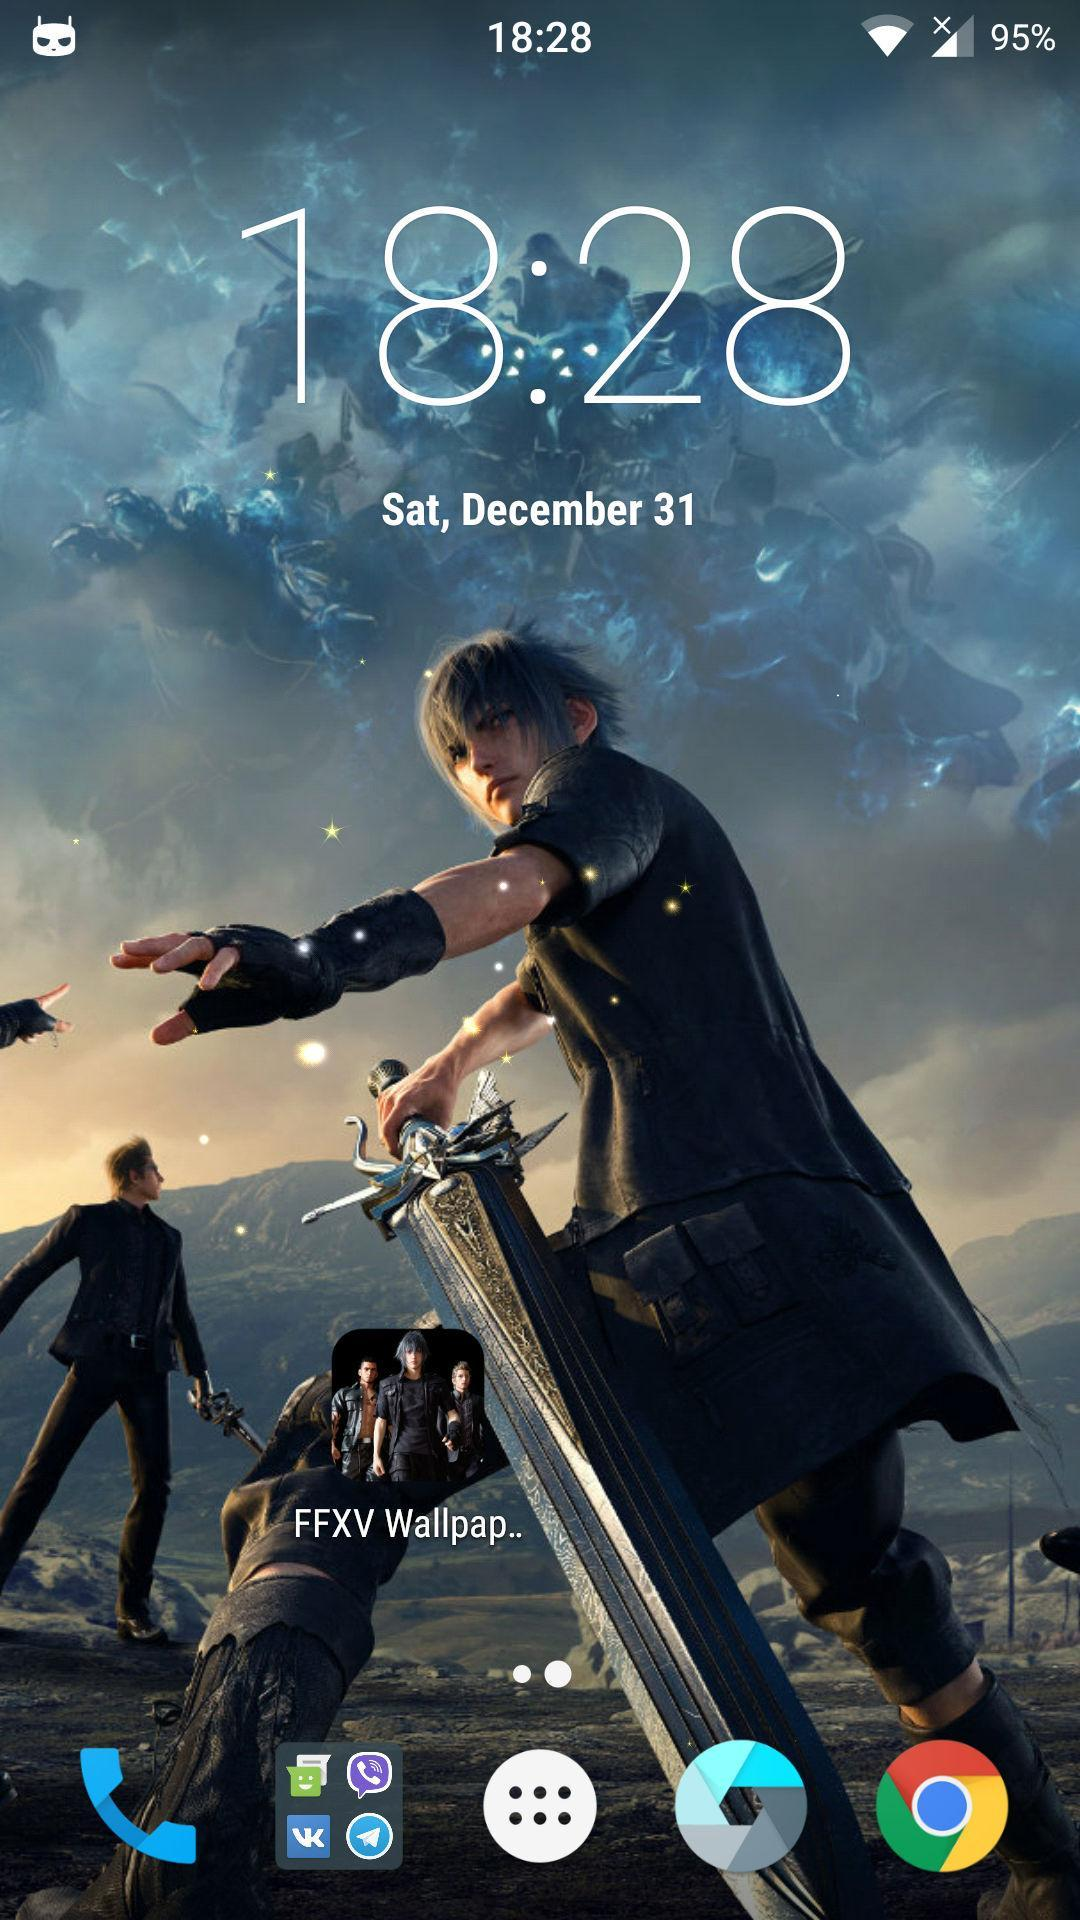 Ffxv Wallpaper Hd 15 For Android Apk Download